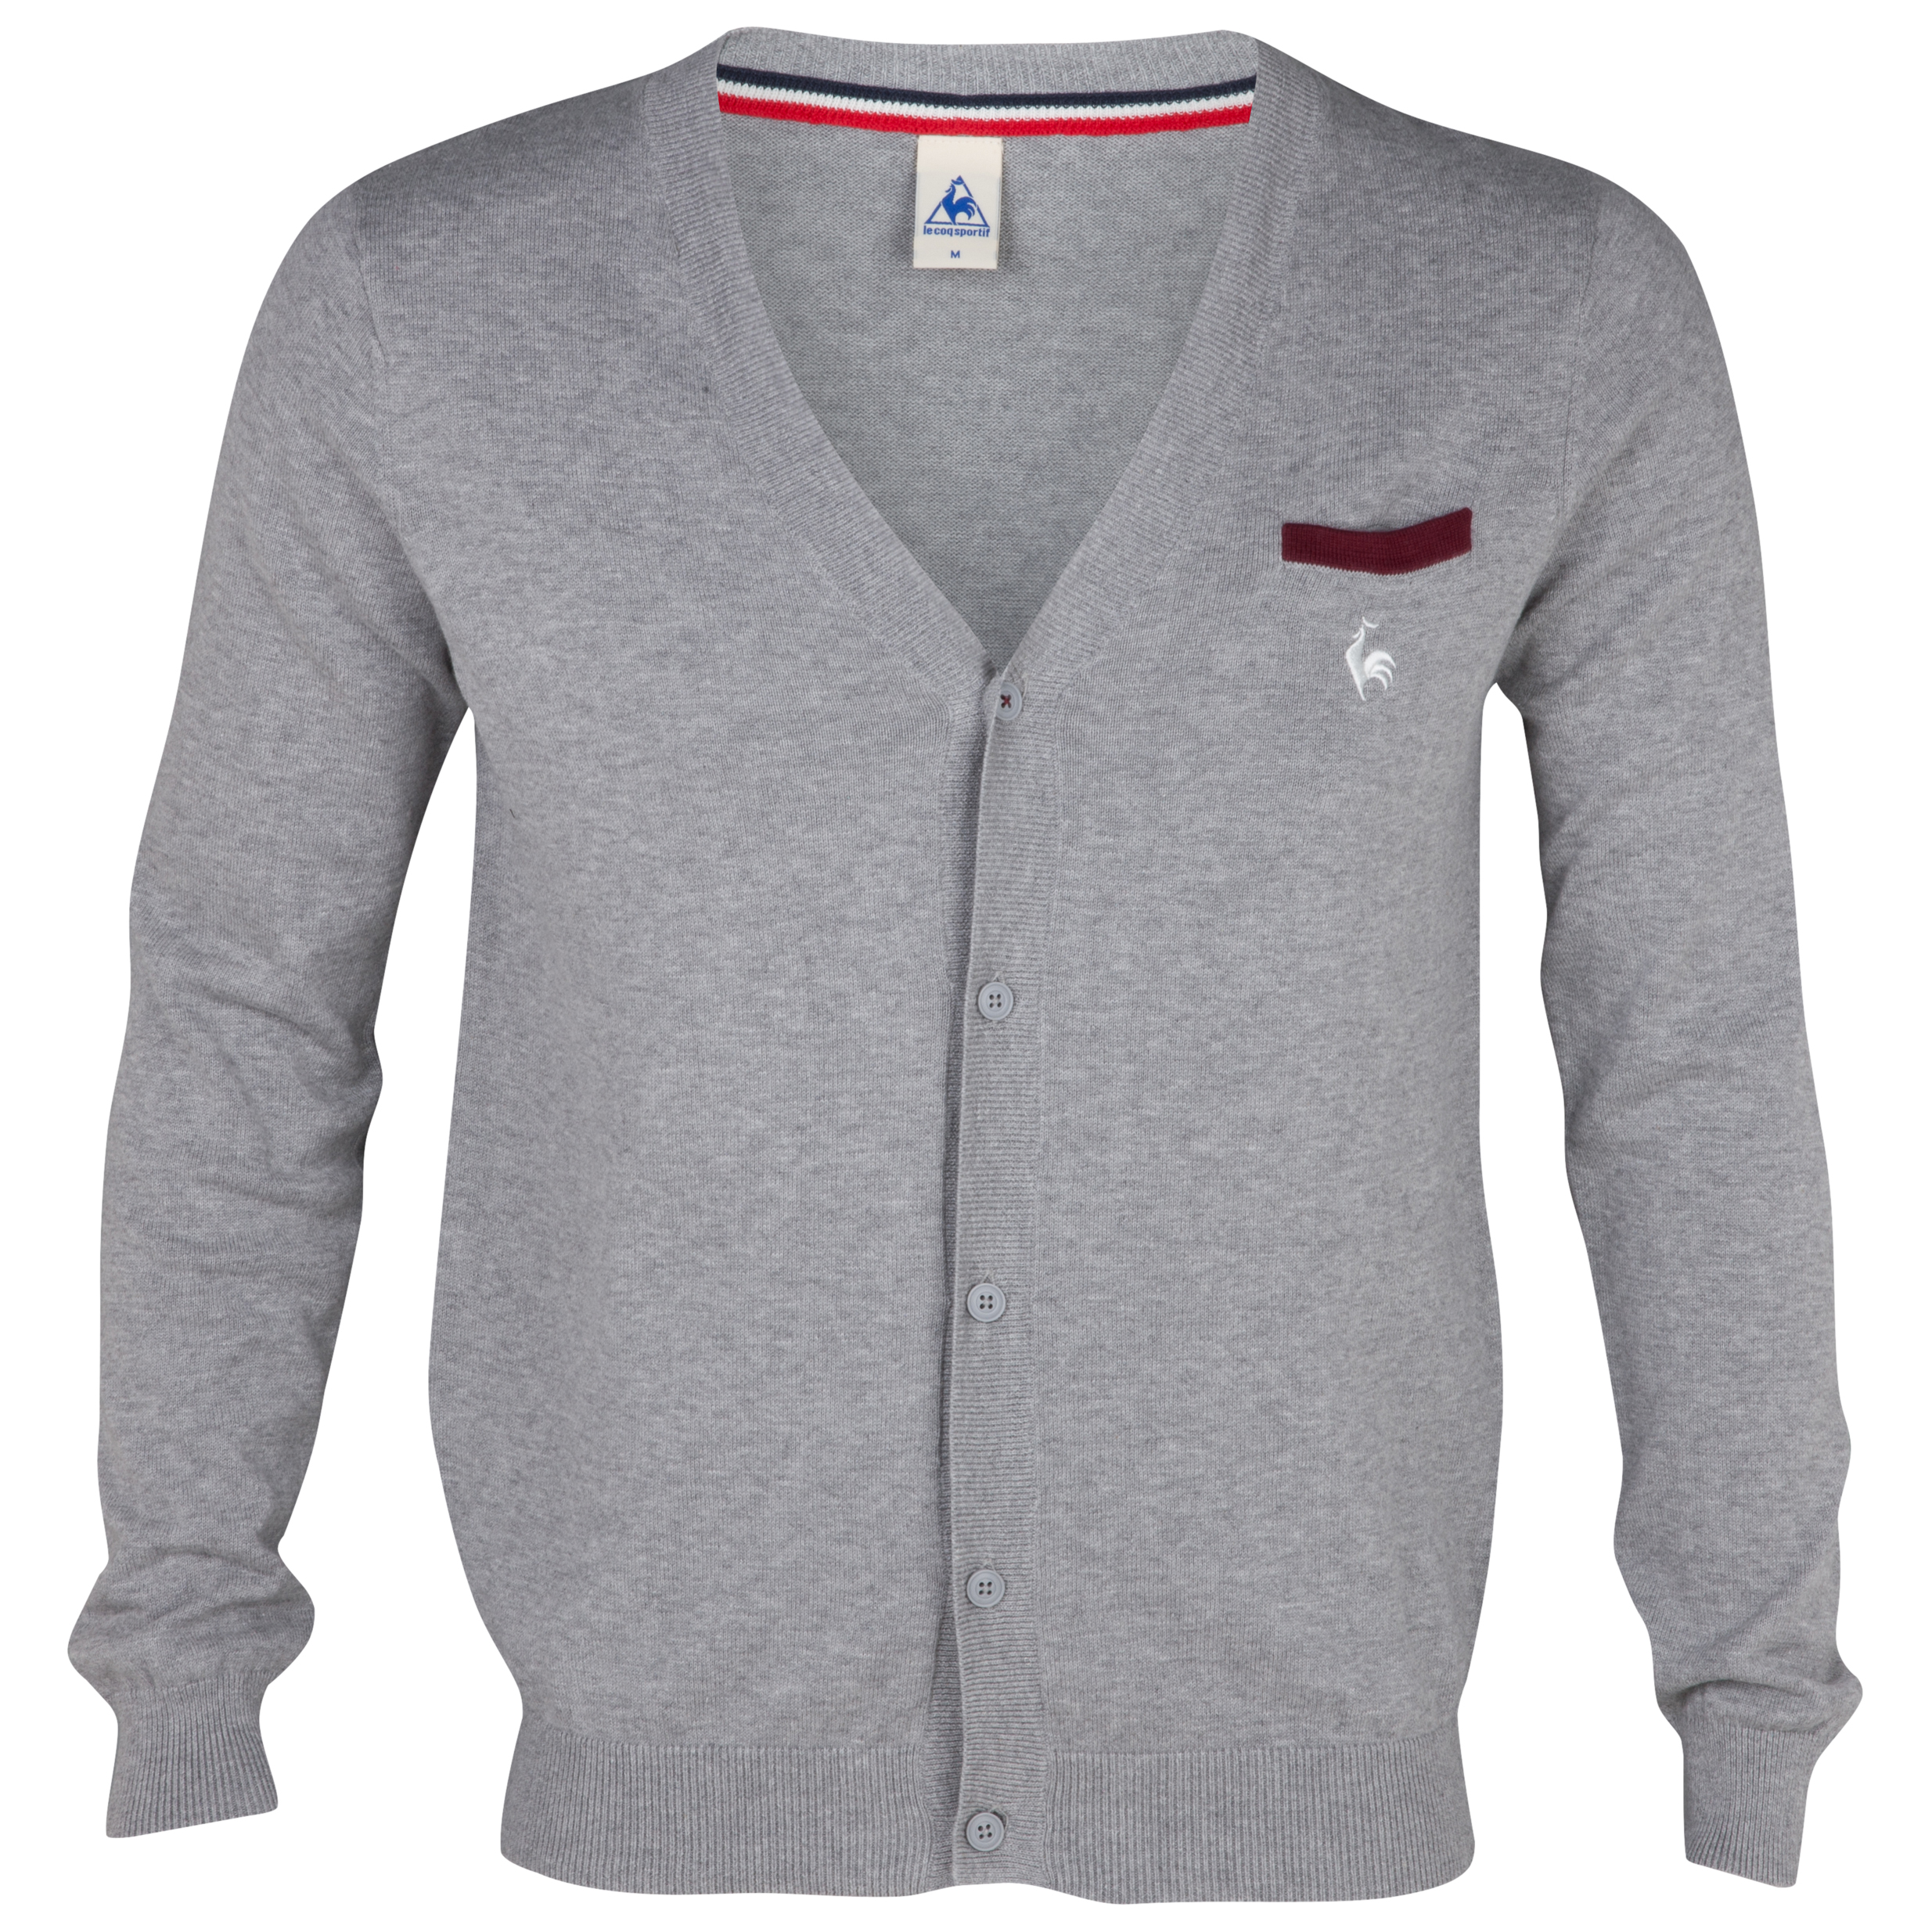 Le Coq Sportif  Cardigan - Light Heather Grey